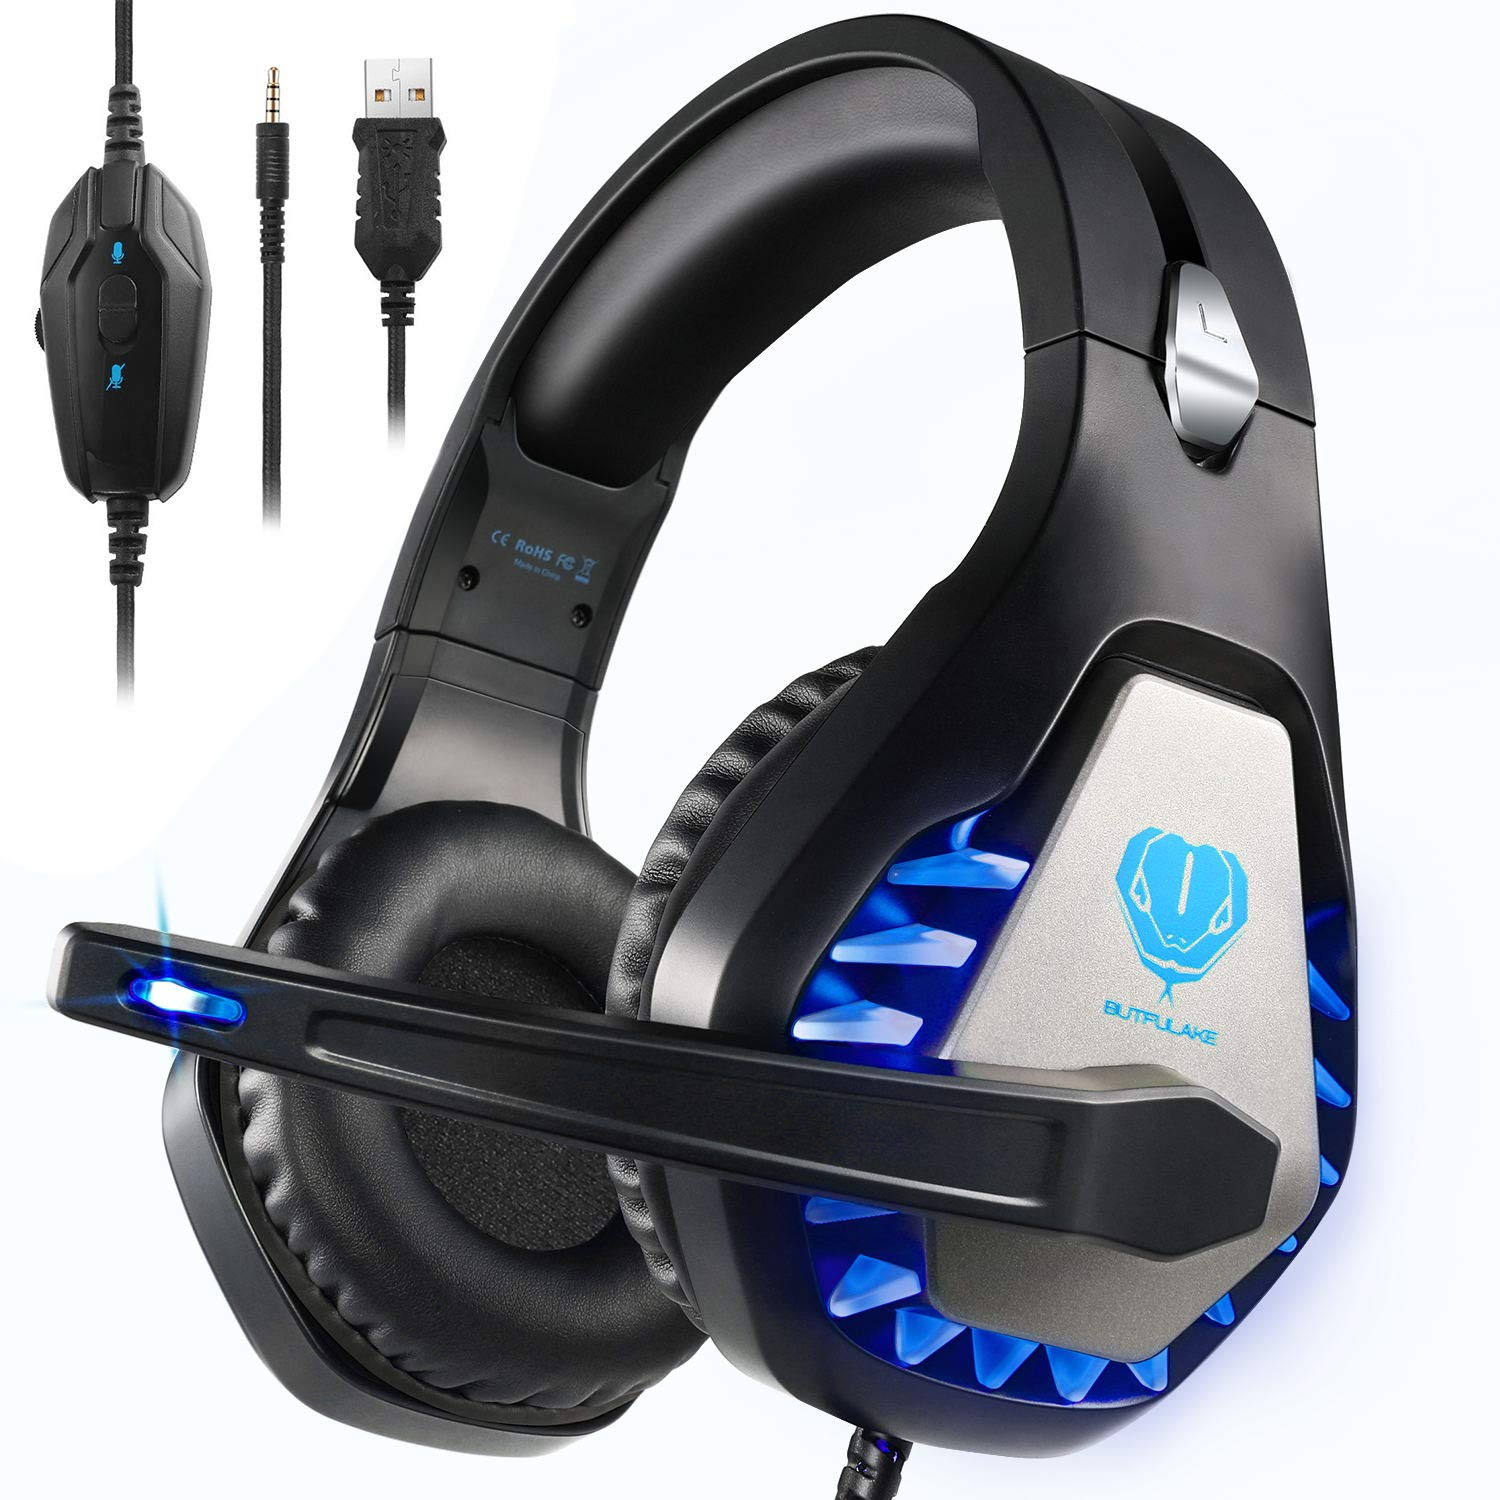 BUTFULAKE GH-1 Gaming Headset for PS4, Xbox One, Xbox One S, PC, Nintendo Switch, Mac, Laptop, Computer, 3.5mm Wired Pro Stereo Over Ear Gaming Headphones with Noise Cancelling Mic &LED Light, Blue by BUTFULAKE